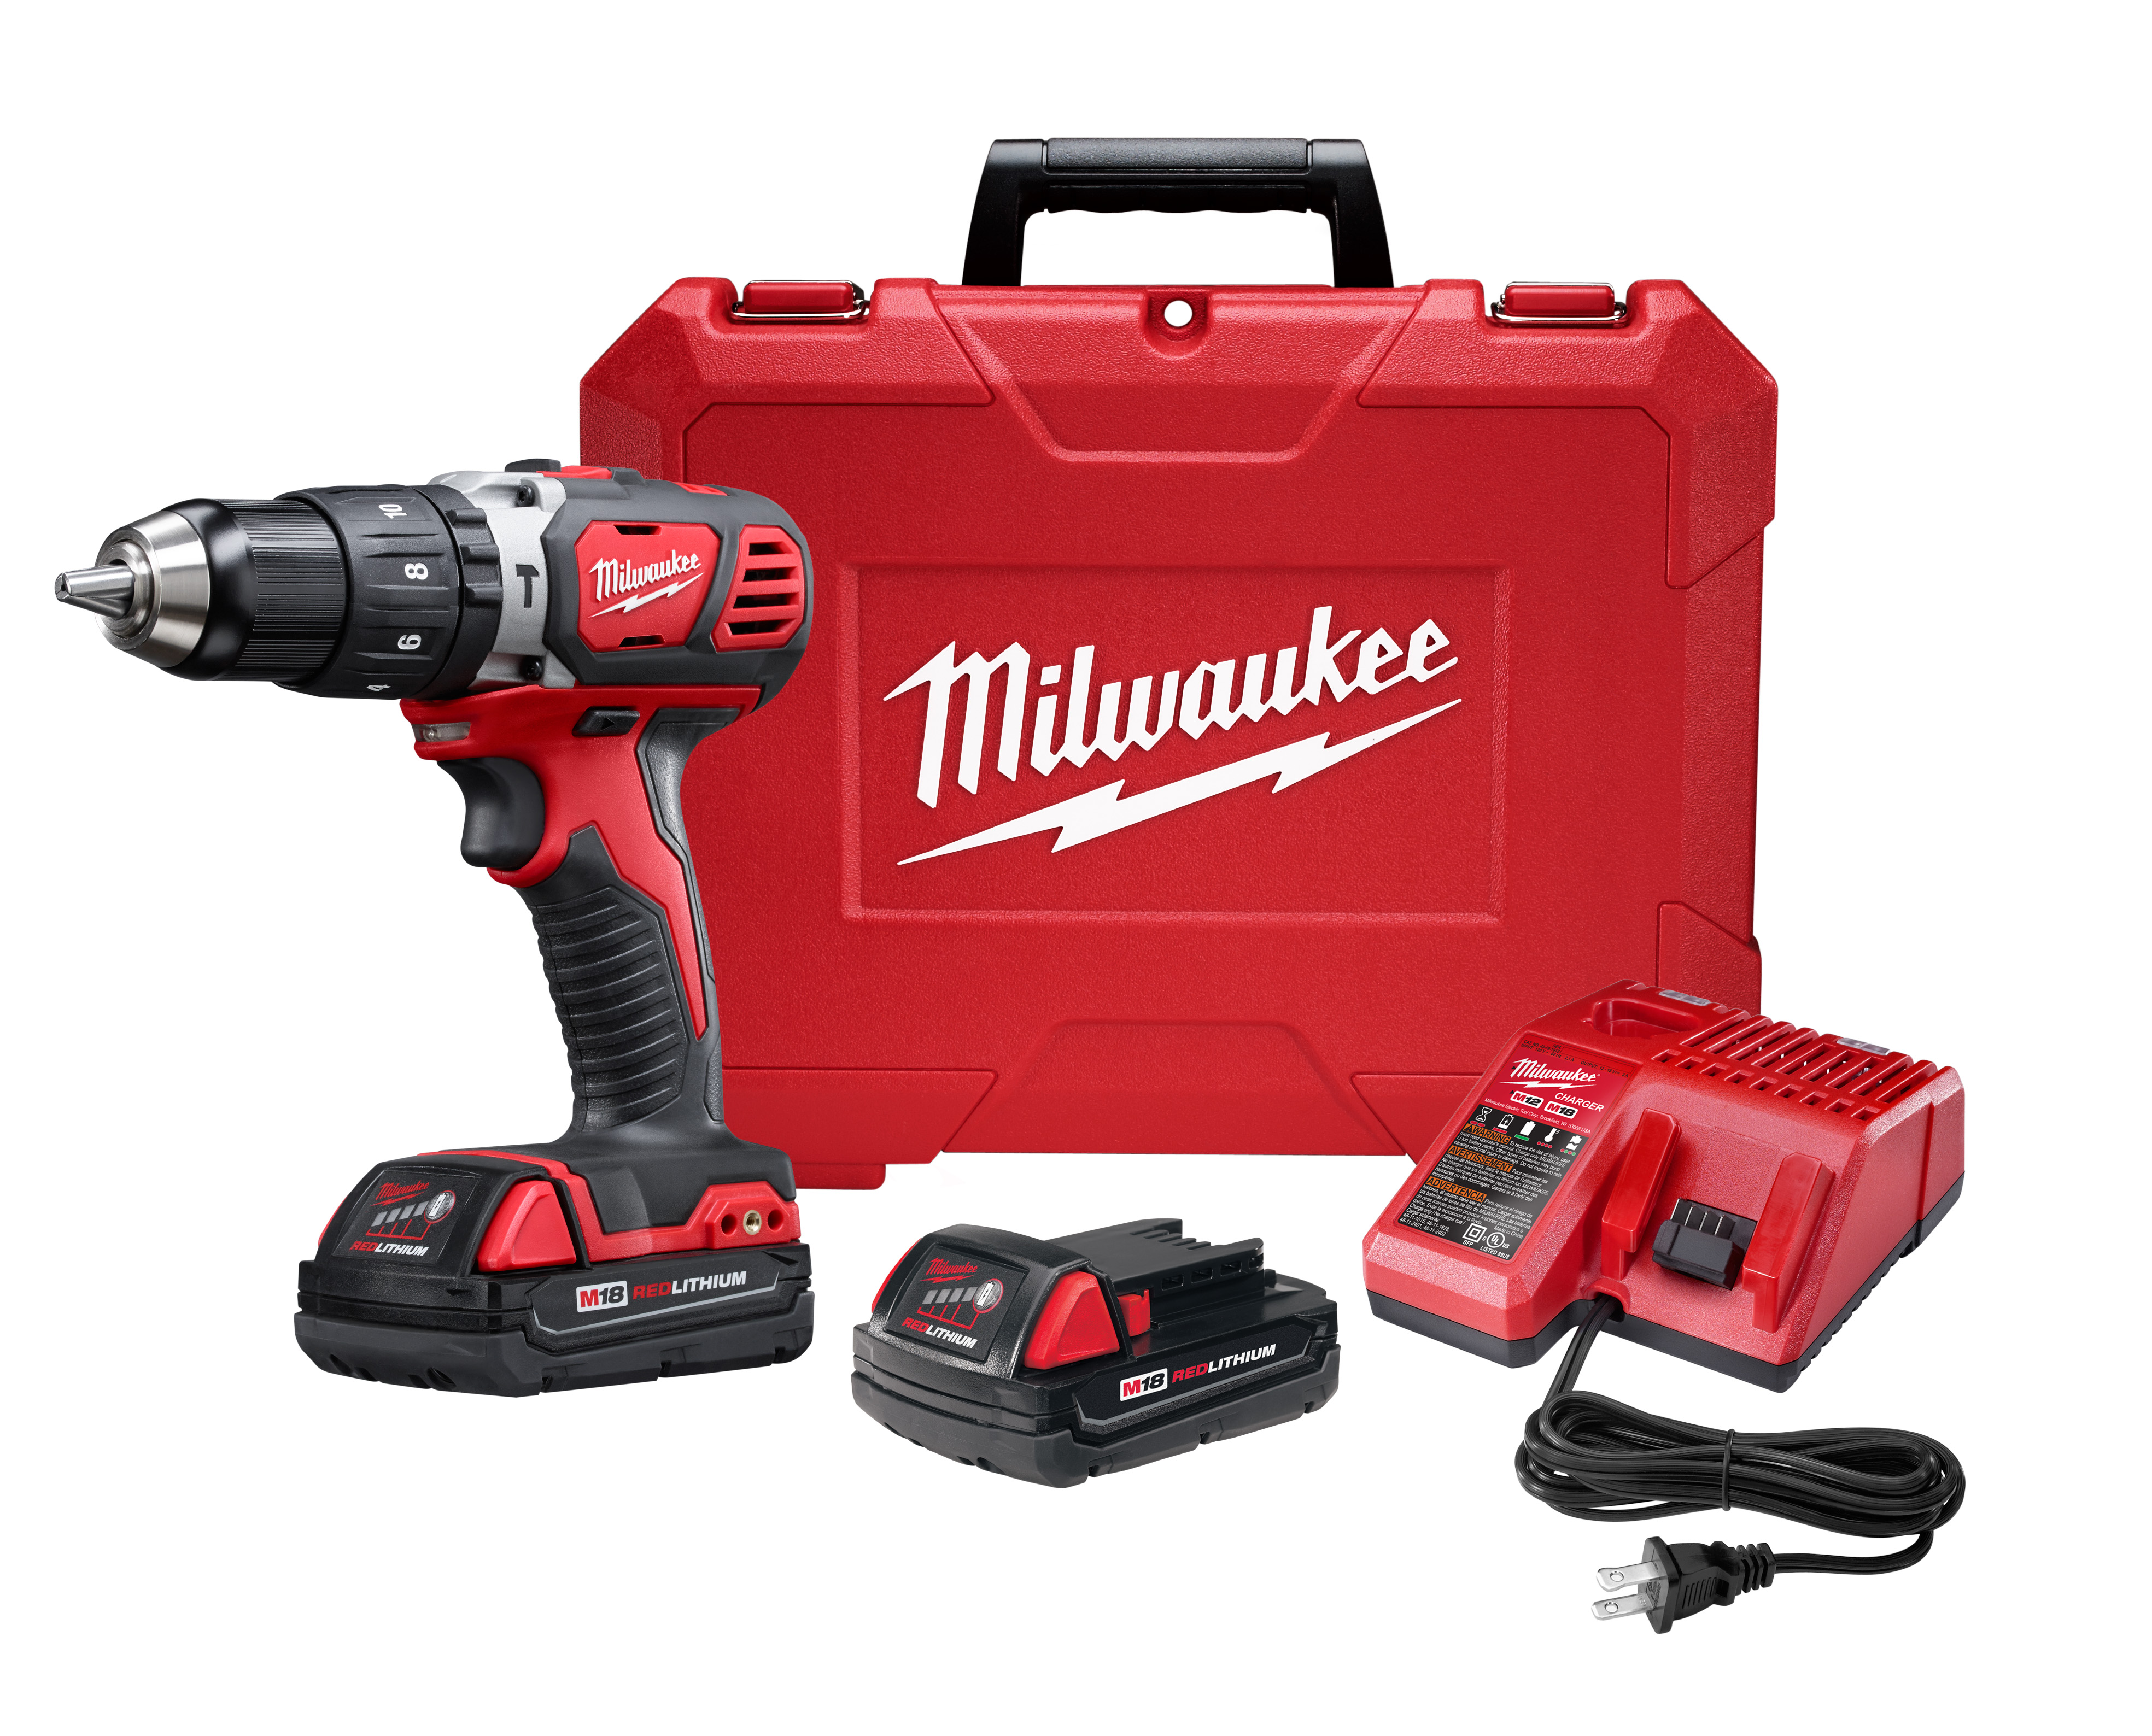 Milwaukee® M18™ 2607-22CT Cordless Hammer Drill/Driver Kit, 1/2 in Metal Single Sleeve Ratcheting Lock Chuck, 18 VDC, 400/1800 rpm No-Load, Lithium-Ion Battery